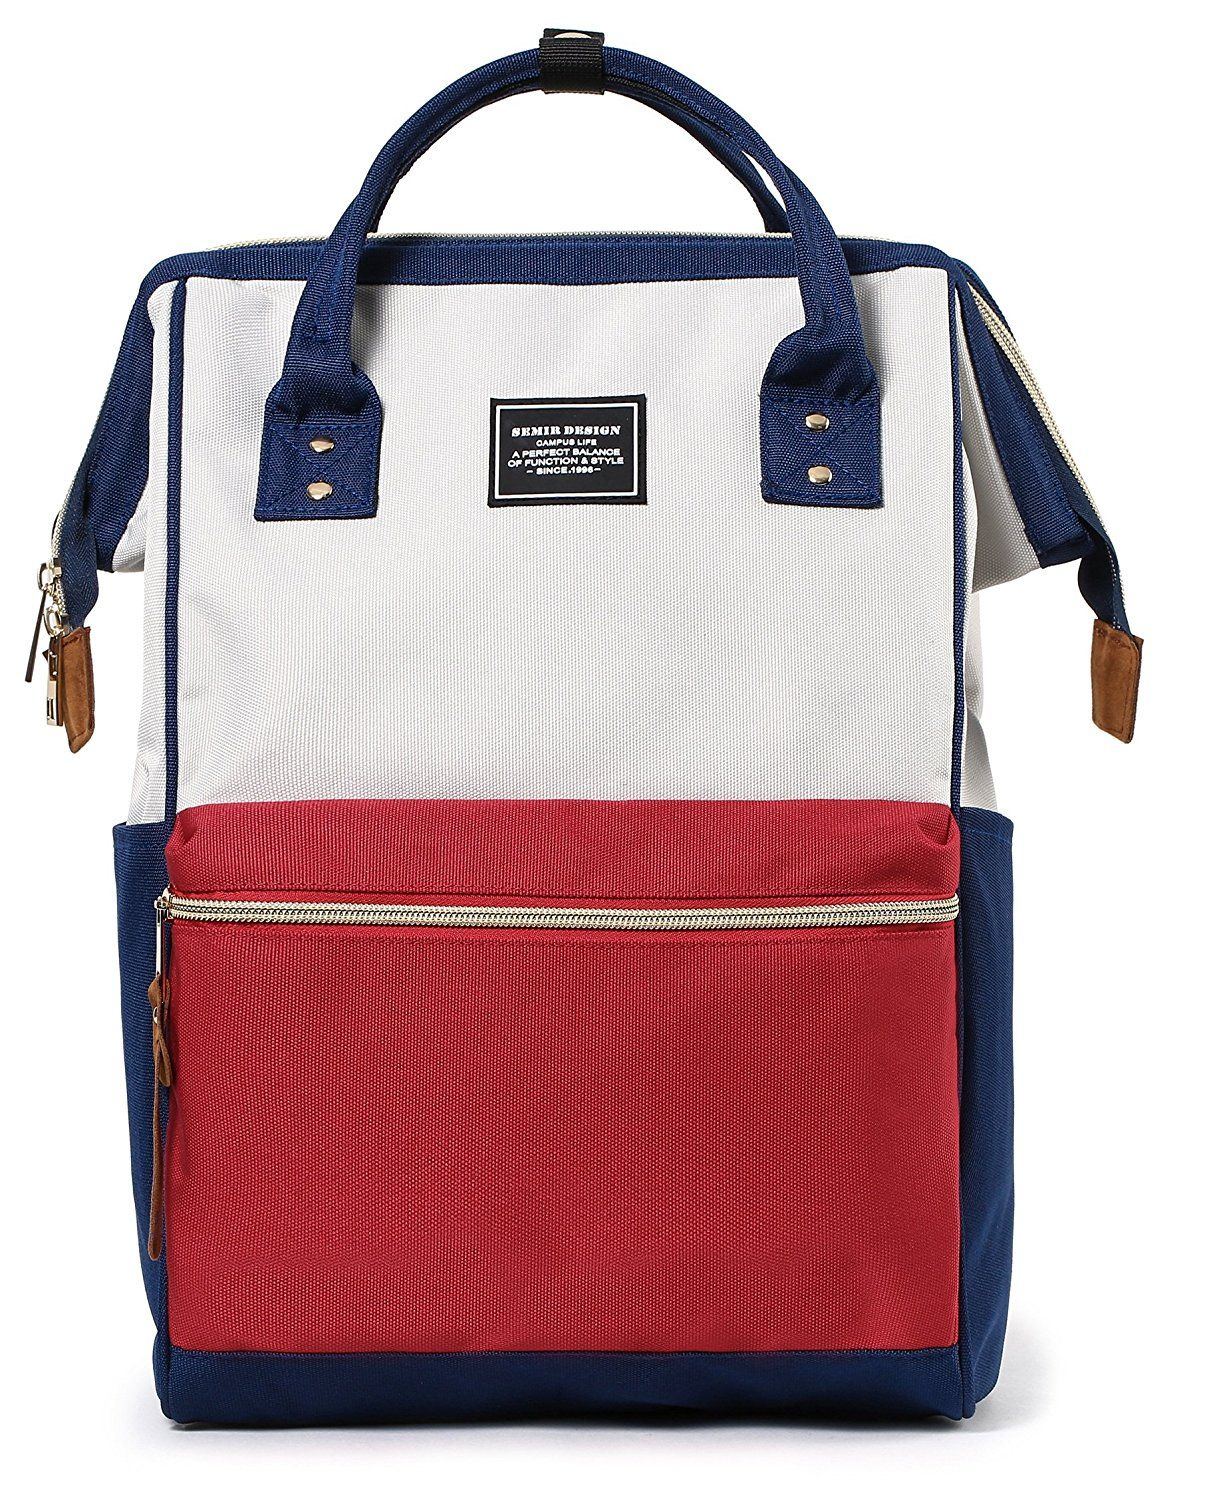 Amazon : Stylish Travel Diaper Bag Laptop Backpack Light Weight Just $17.39  W/Code (